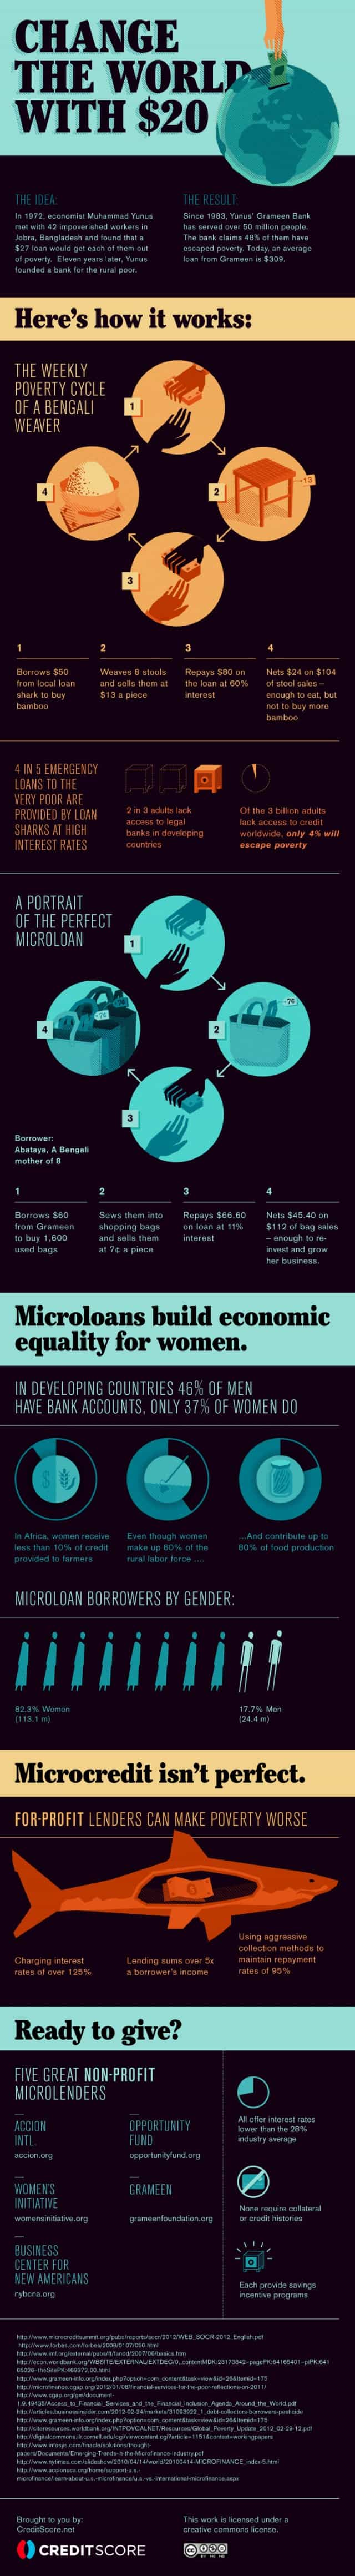 Change the World with $20: Microloans [infographic]